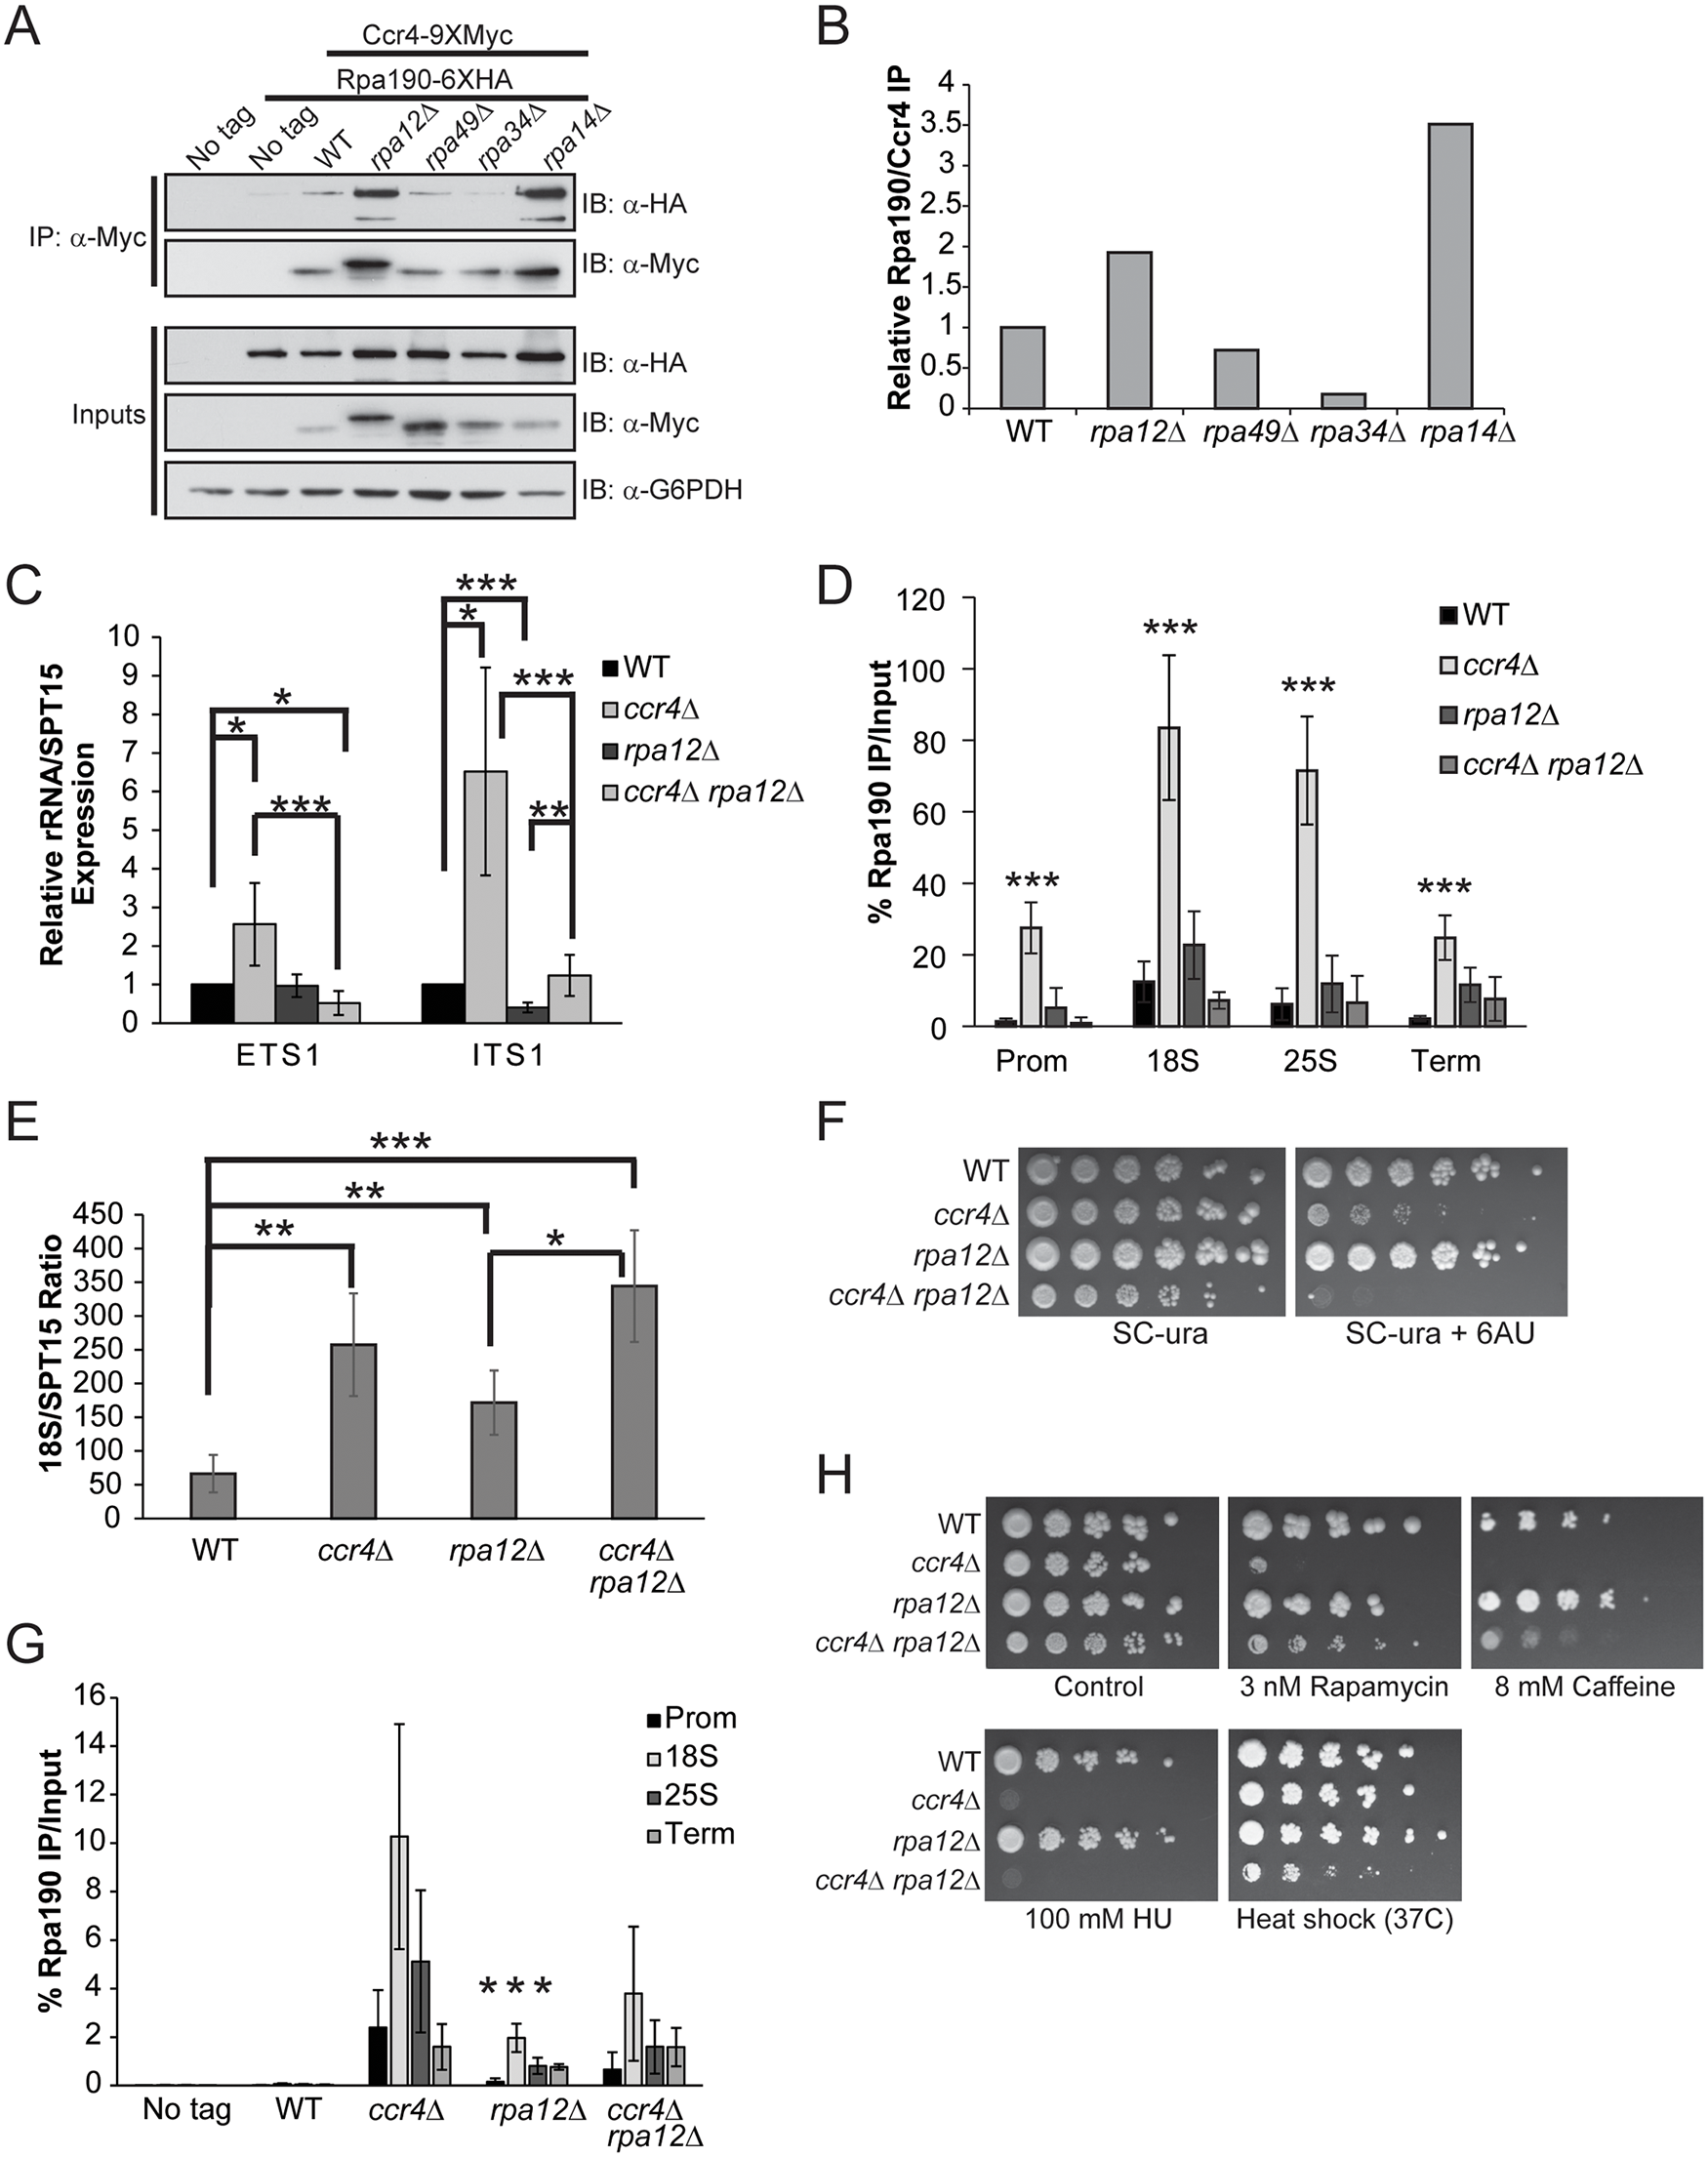 Pol I elongation subunits modulate Ccr4-Not interaction and the sensitivity of Ccr4-Not mutants to mTORC1 inhibition.